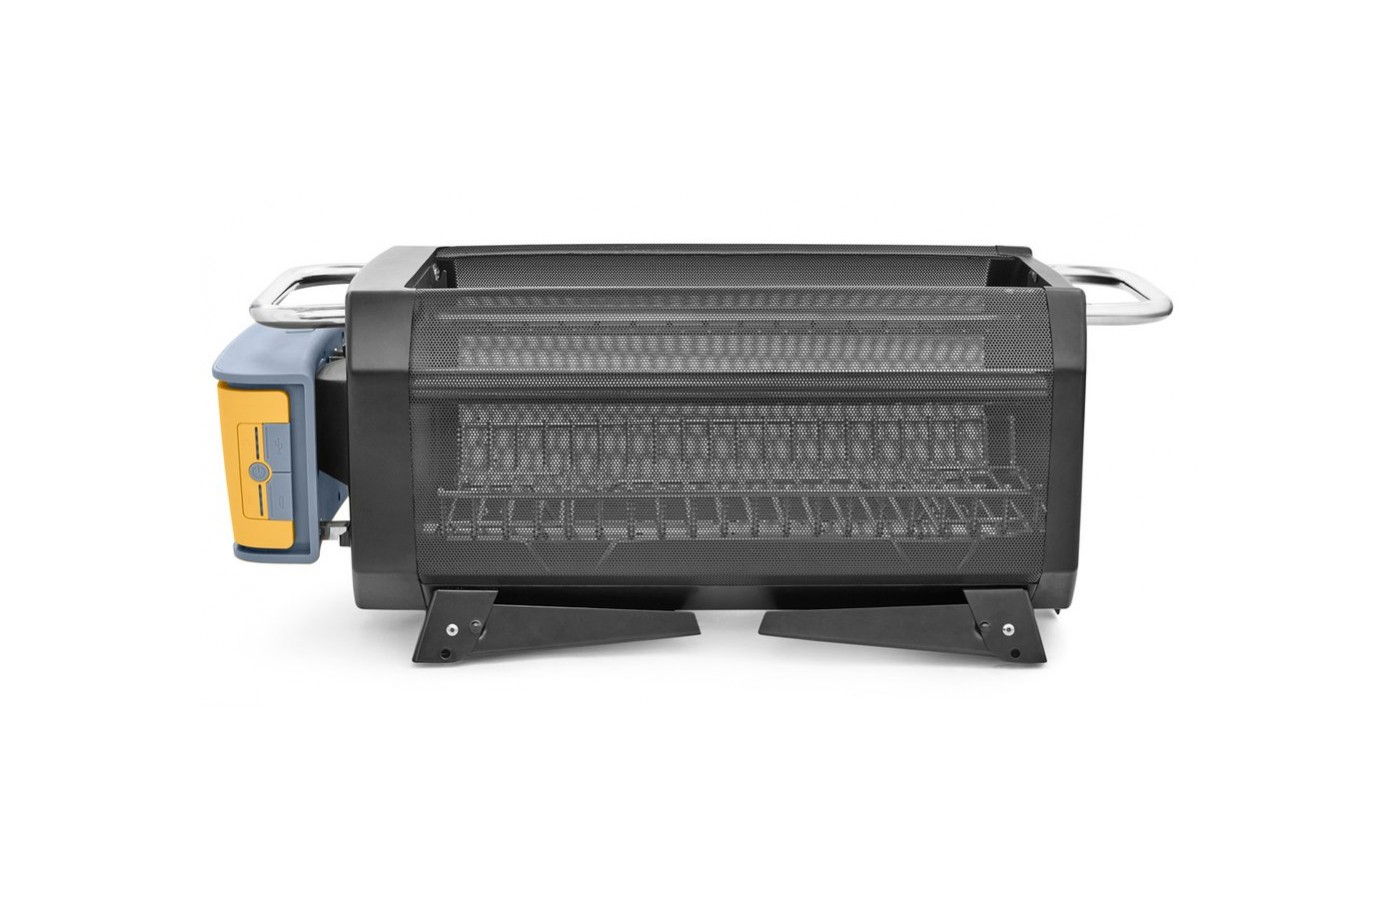 Folded up, this grill is semi-portable, allowing for shorter distances with ease.